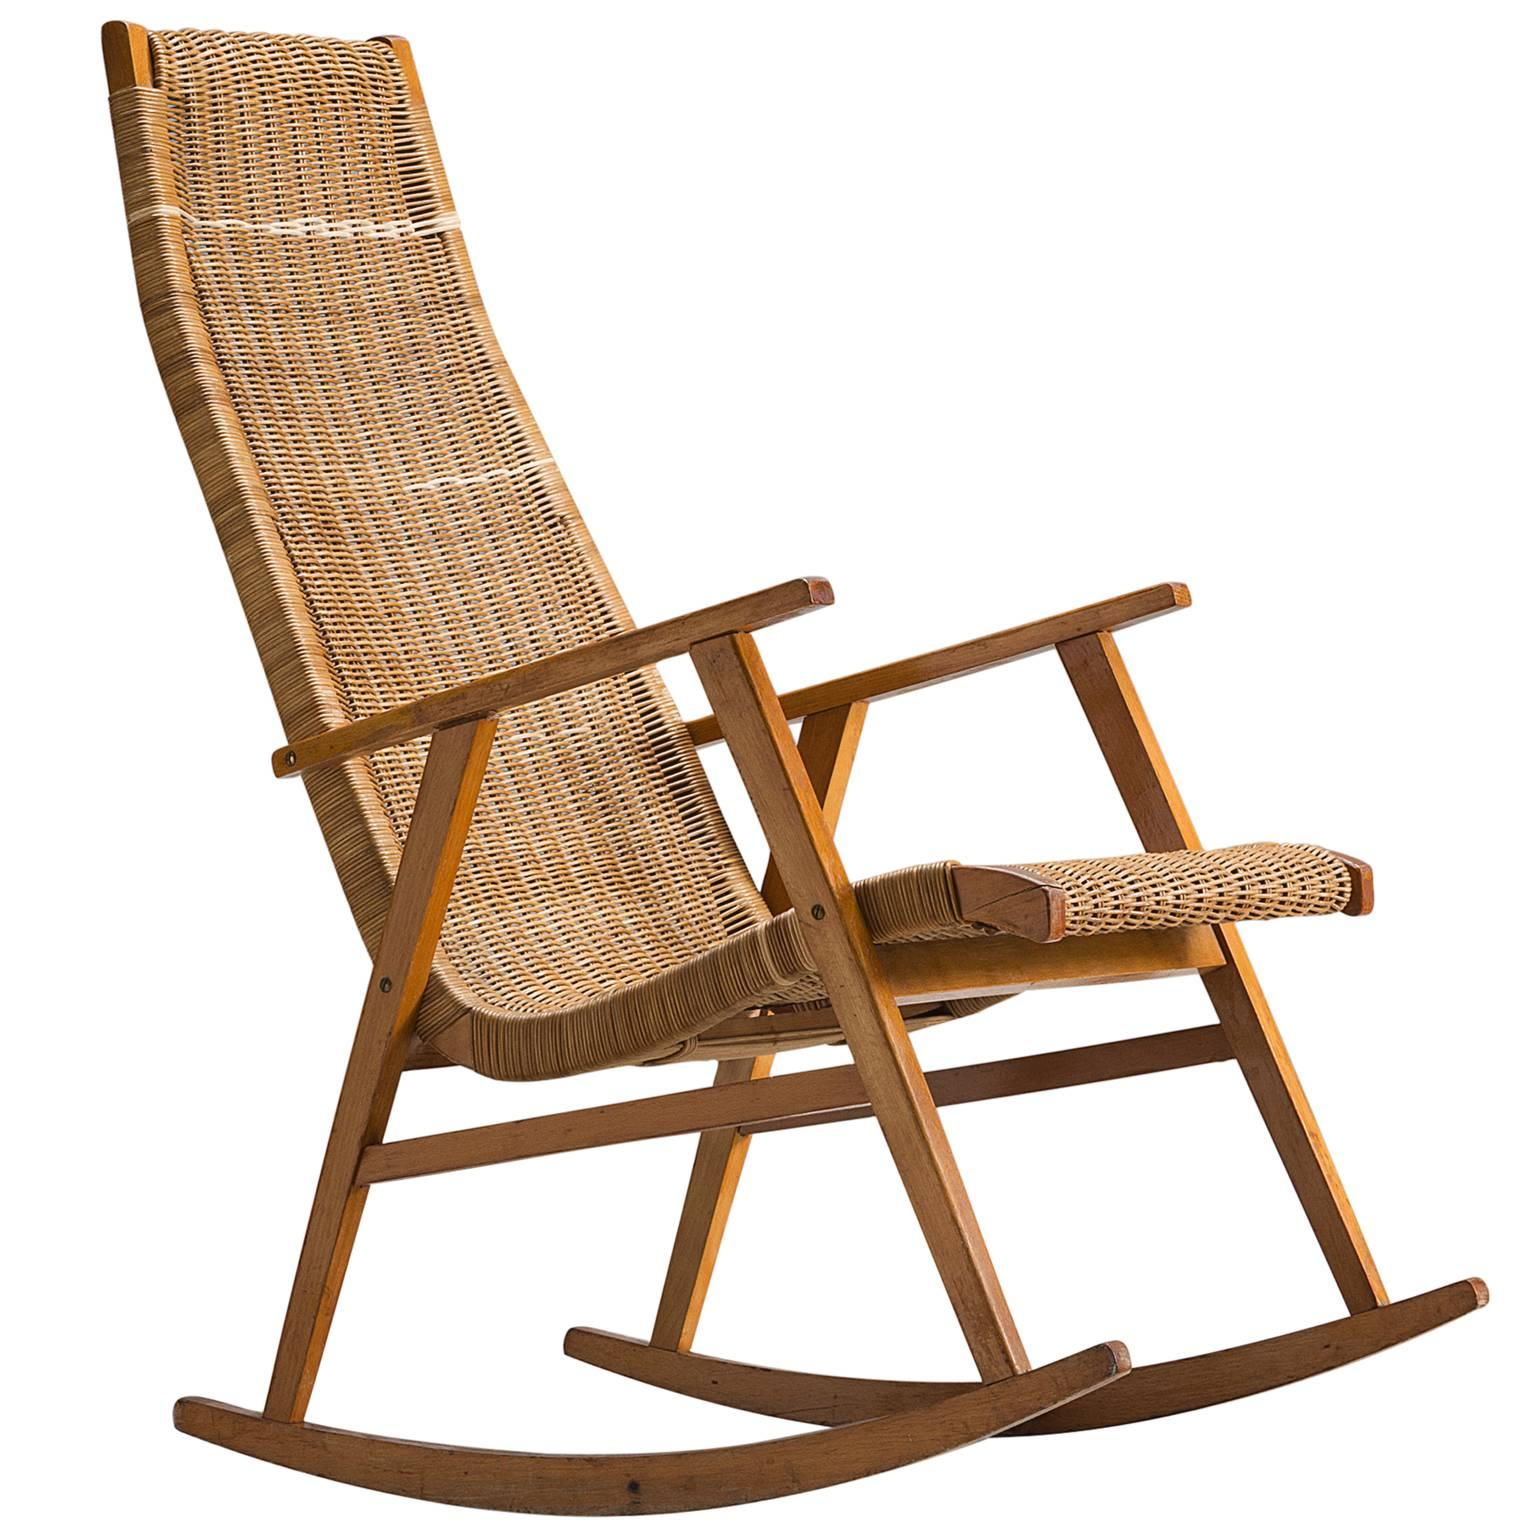 rocking chair cane outdoor plastic chairs dutch in 1950s for sale at 1stdibs